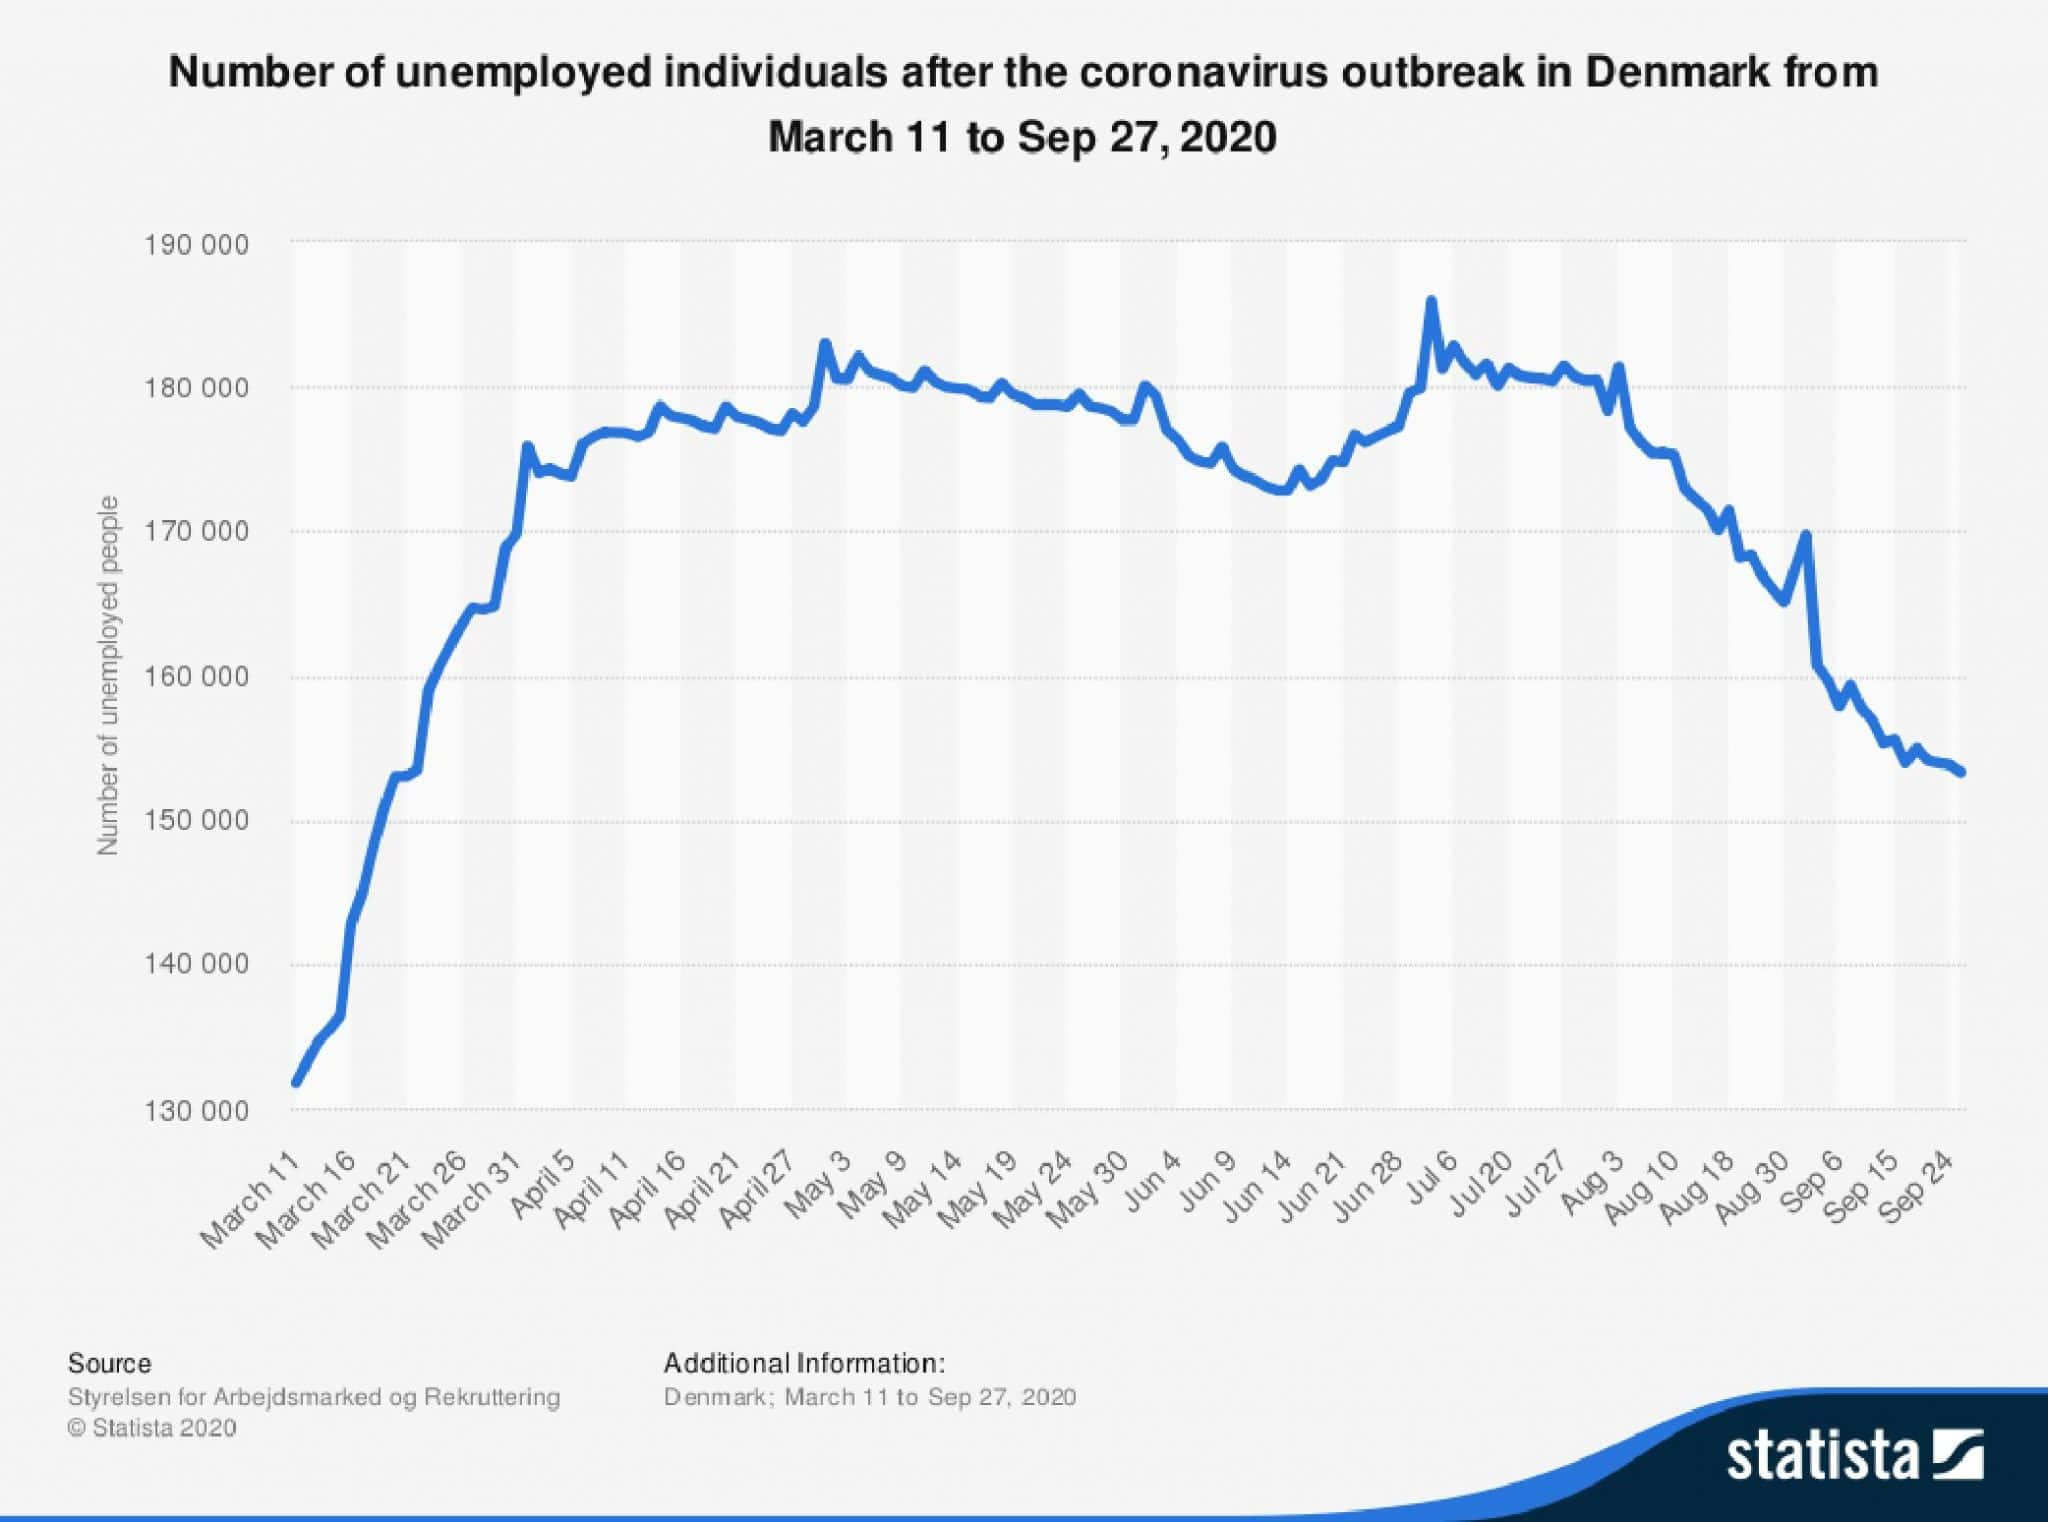 statistic_id1110143_number-of-individuals-unemployed-after-the-coronavirus-outbreak-in-denmark-2020-page-001